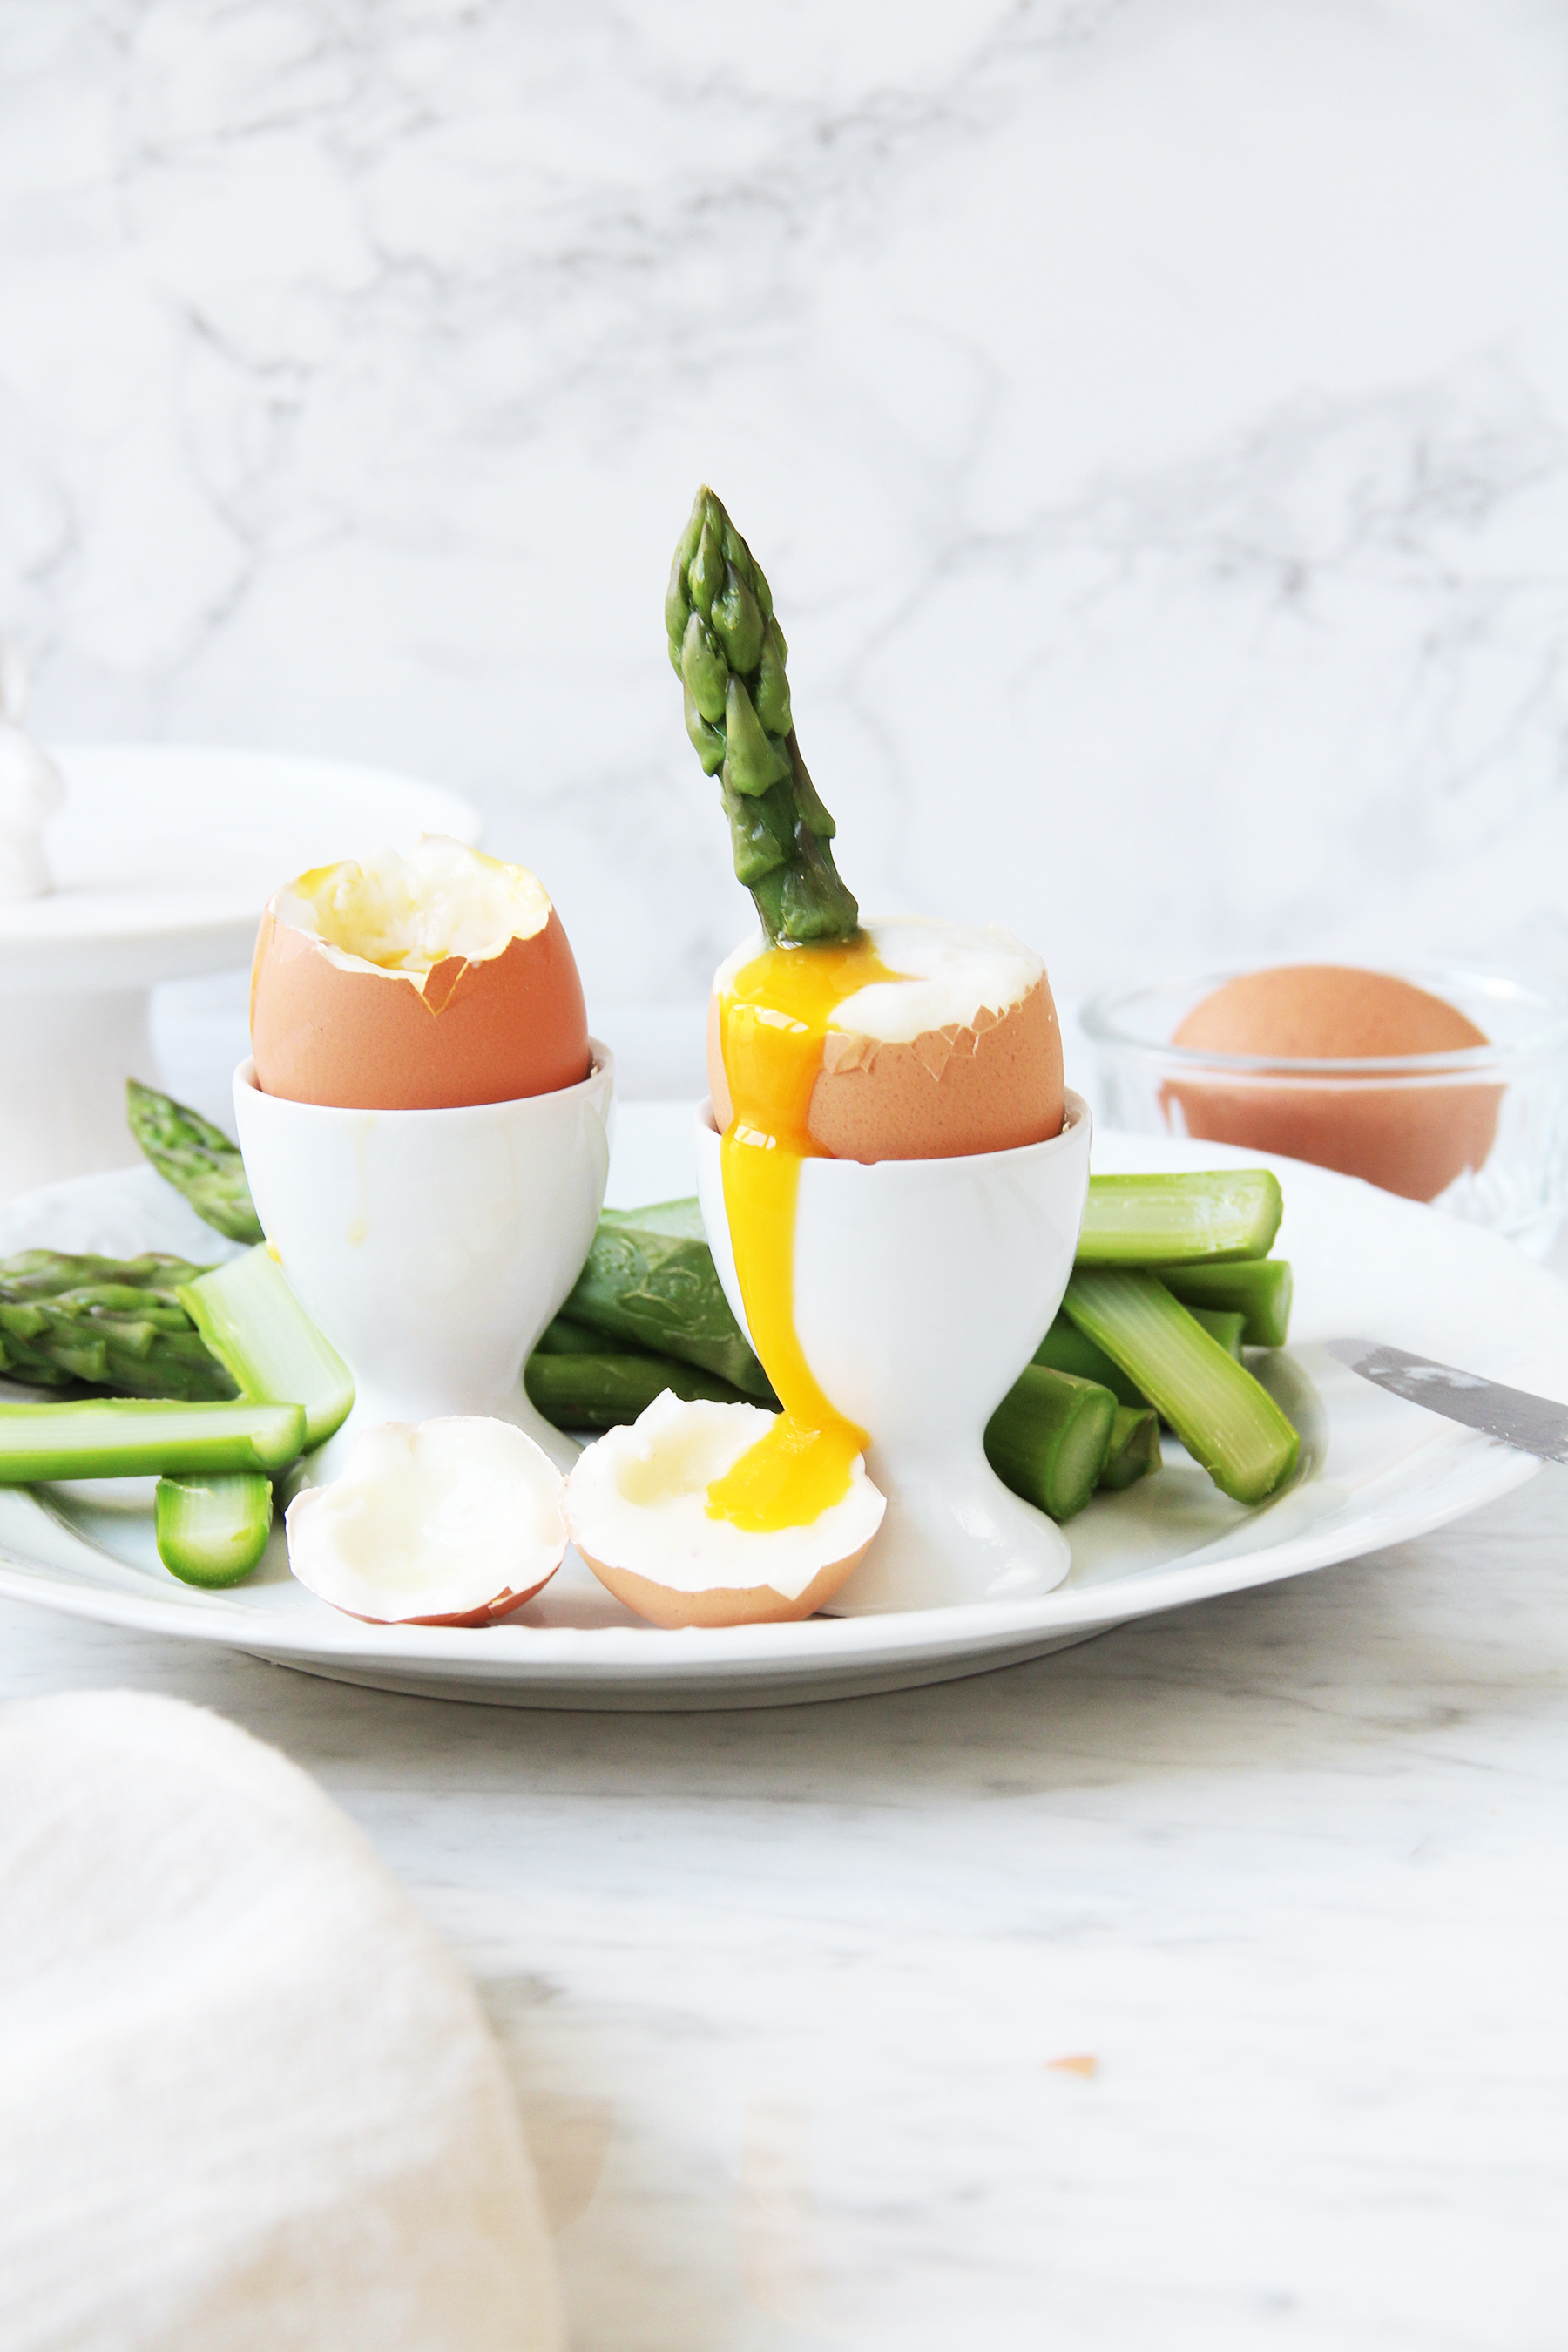 easter eggs with asparagus sticks